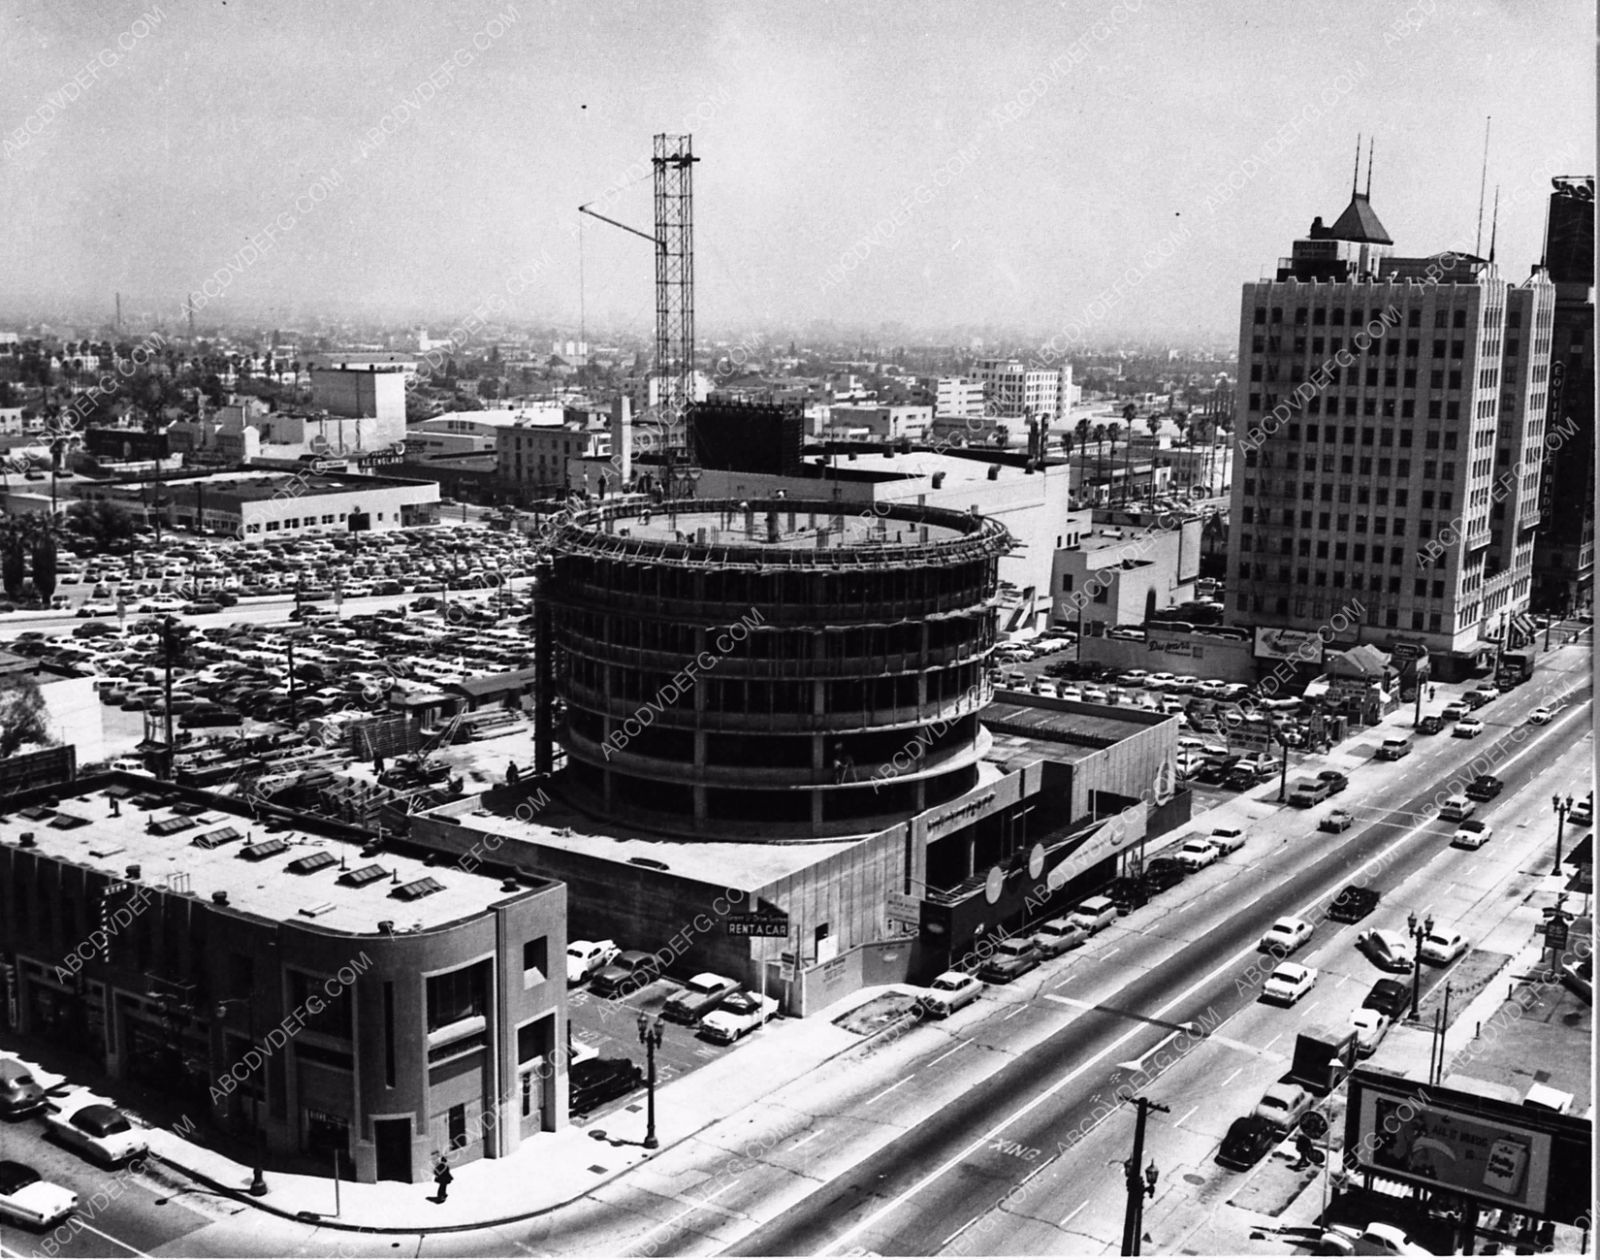 Photoc 1955 Historic Hollywood La Capital Records Building Under Construction 2877 08 Los Angeles Architecture Capitol Records Los Angeles History